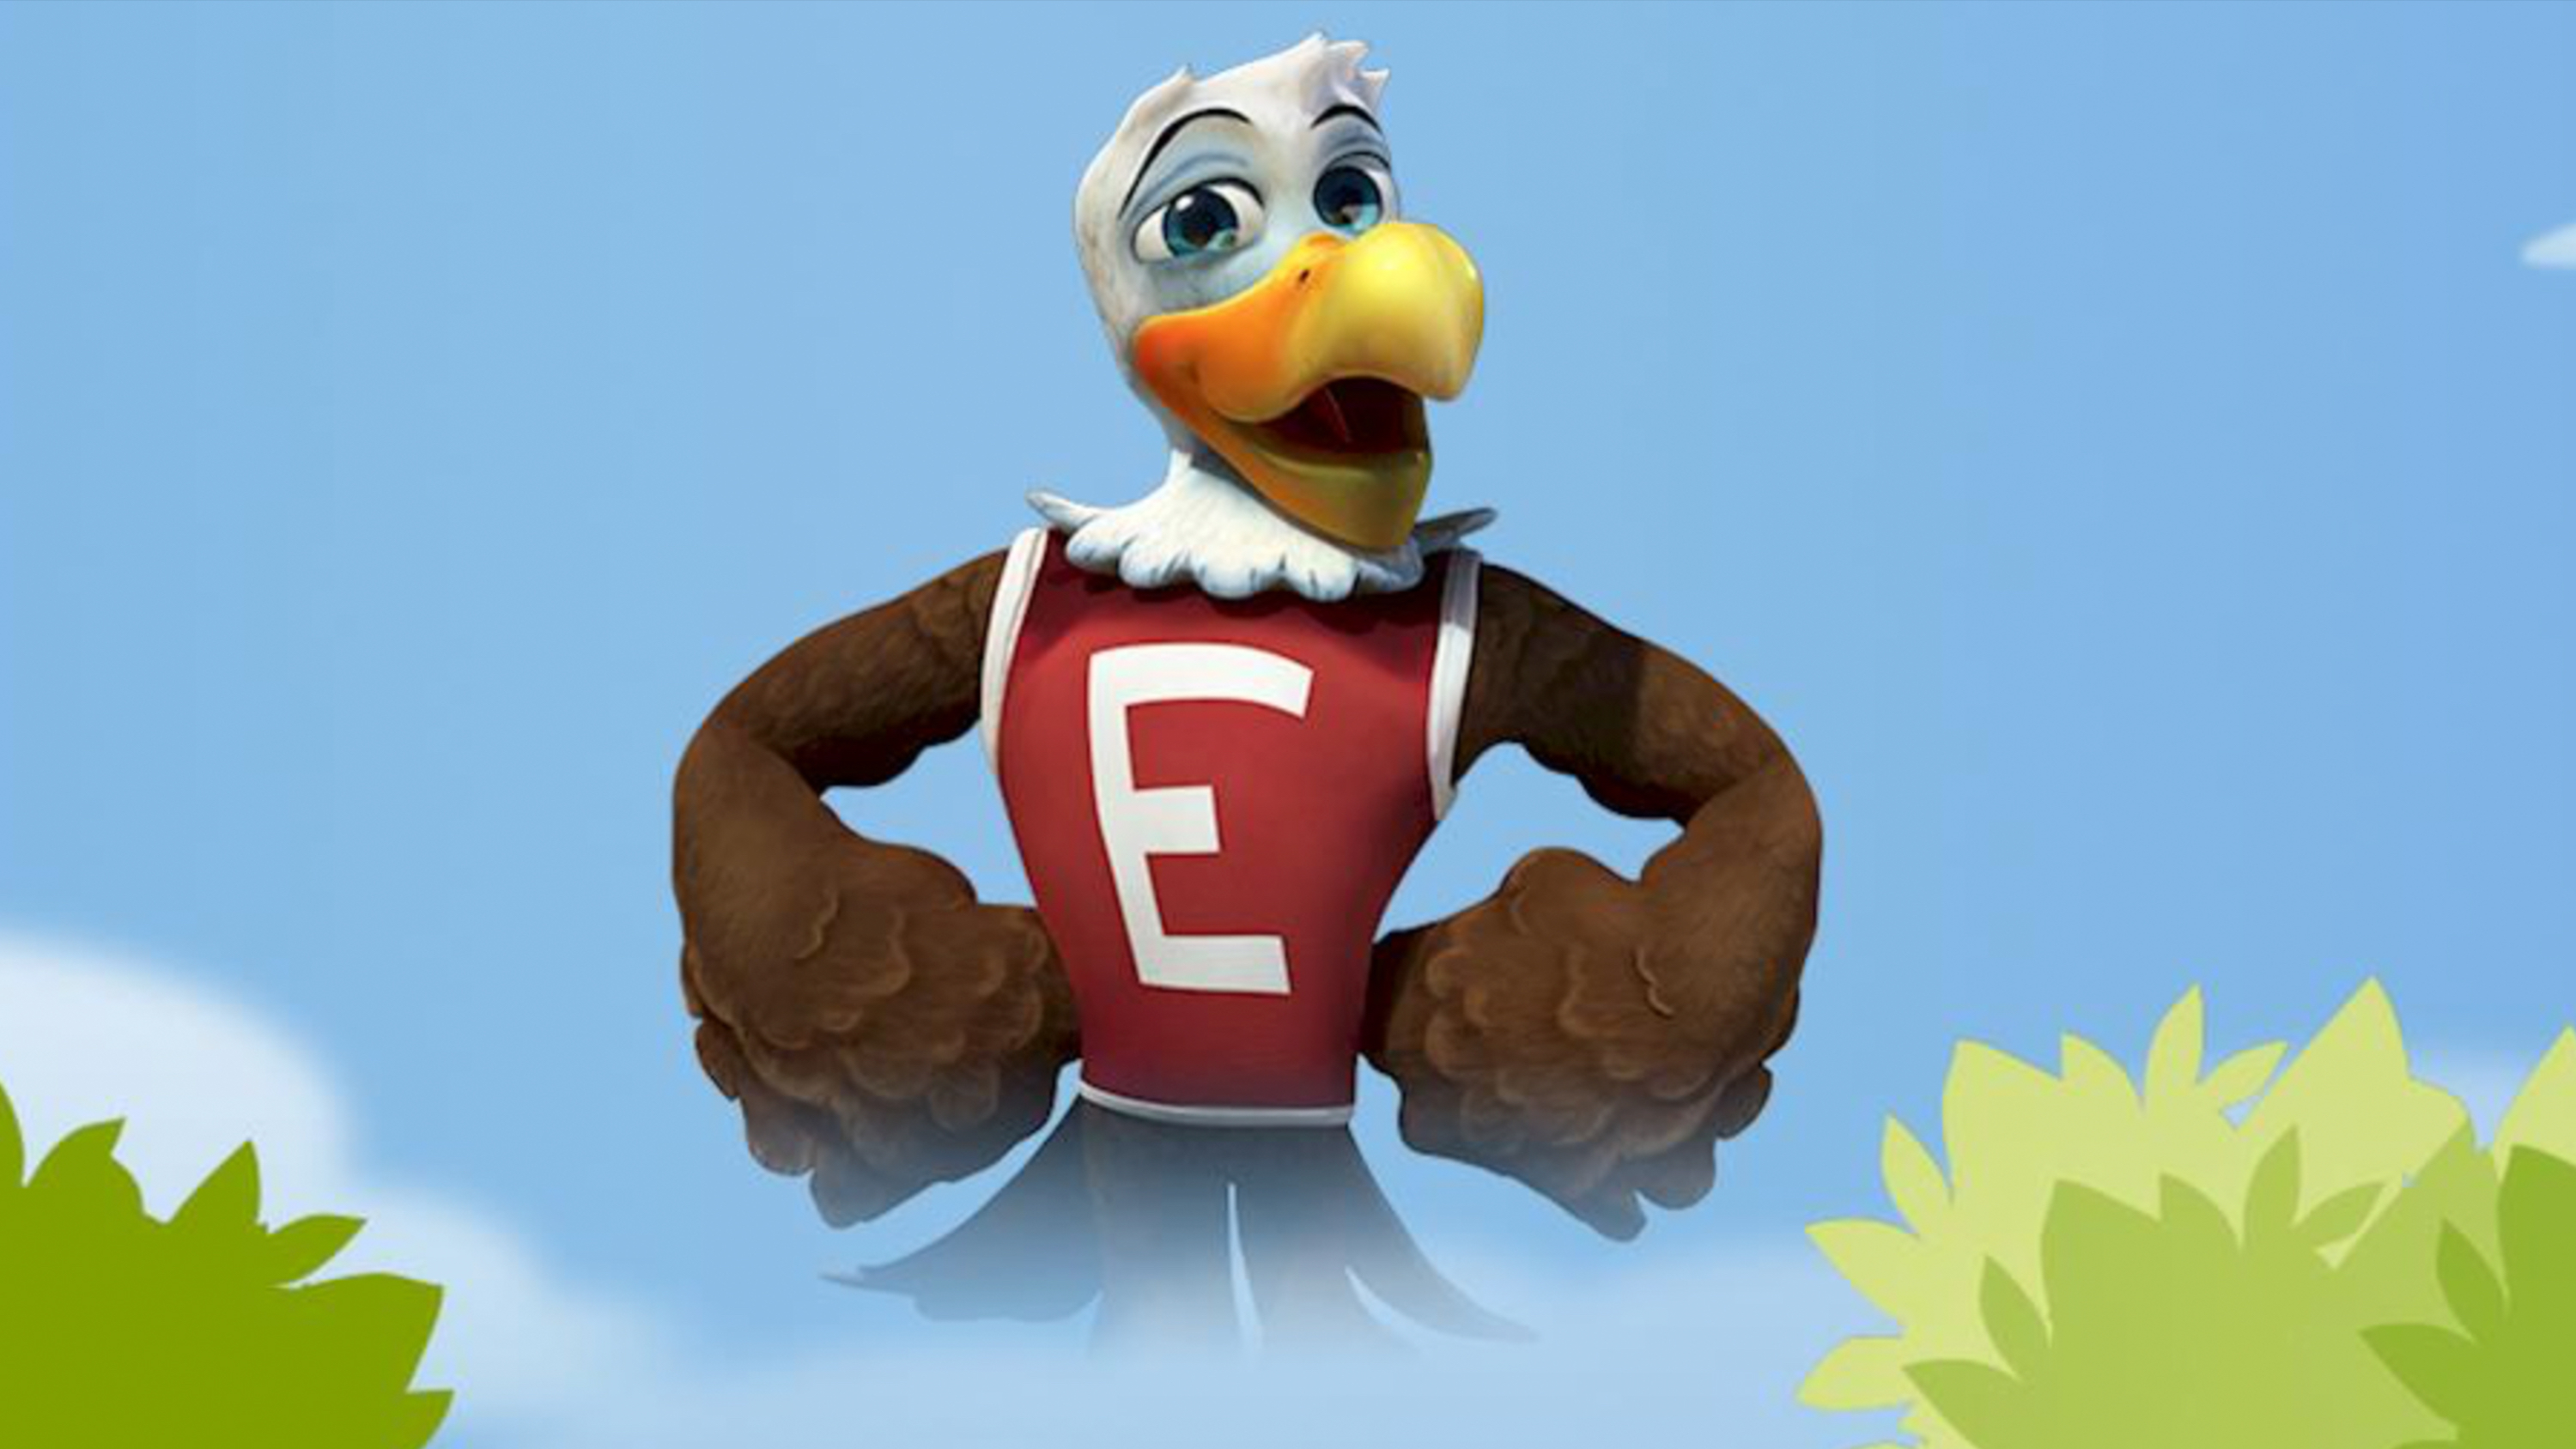 NRA's Eddie Eagle GunSafe Program Reaches 32 Million Children